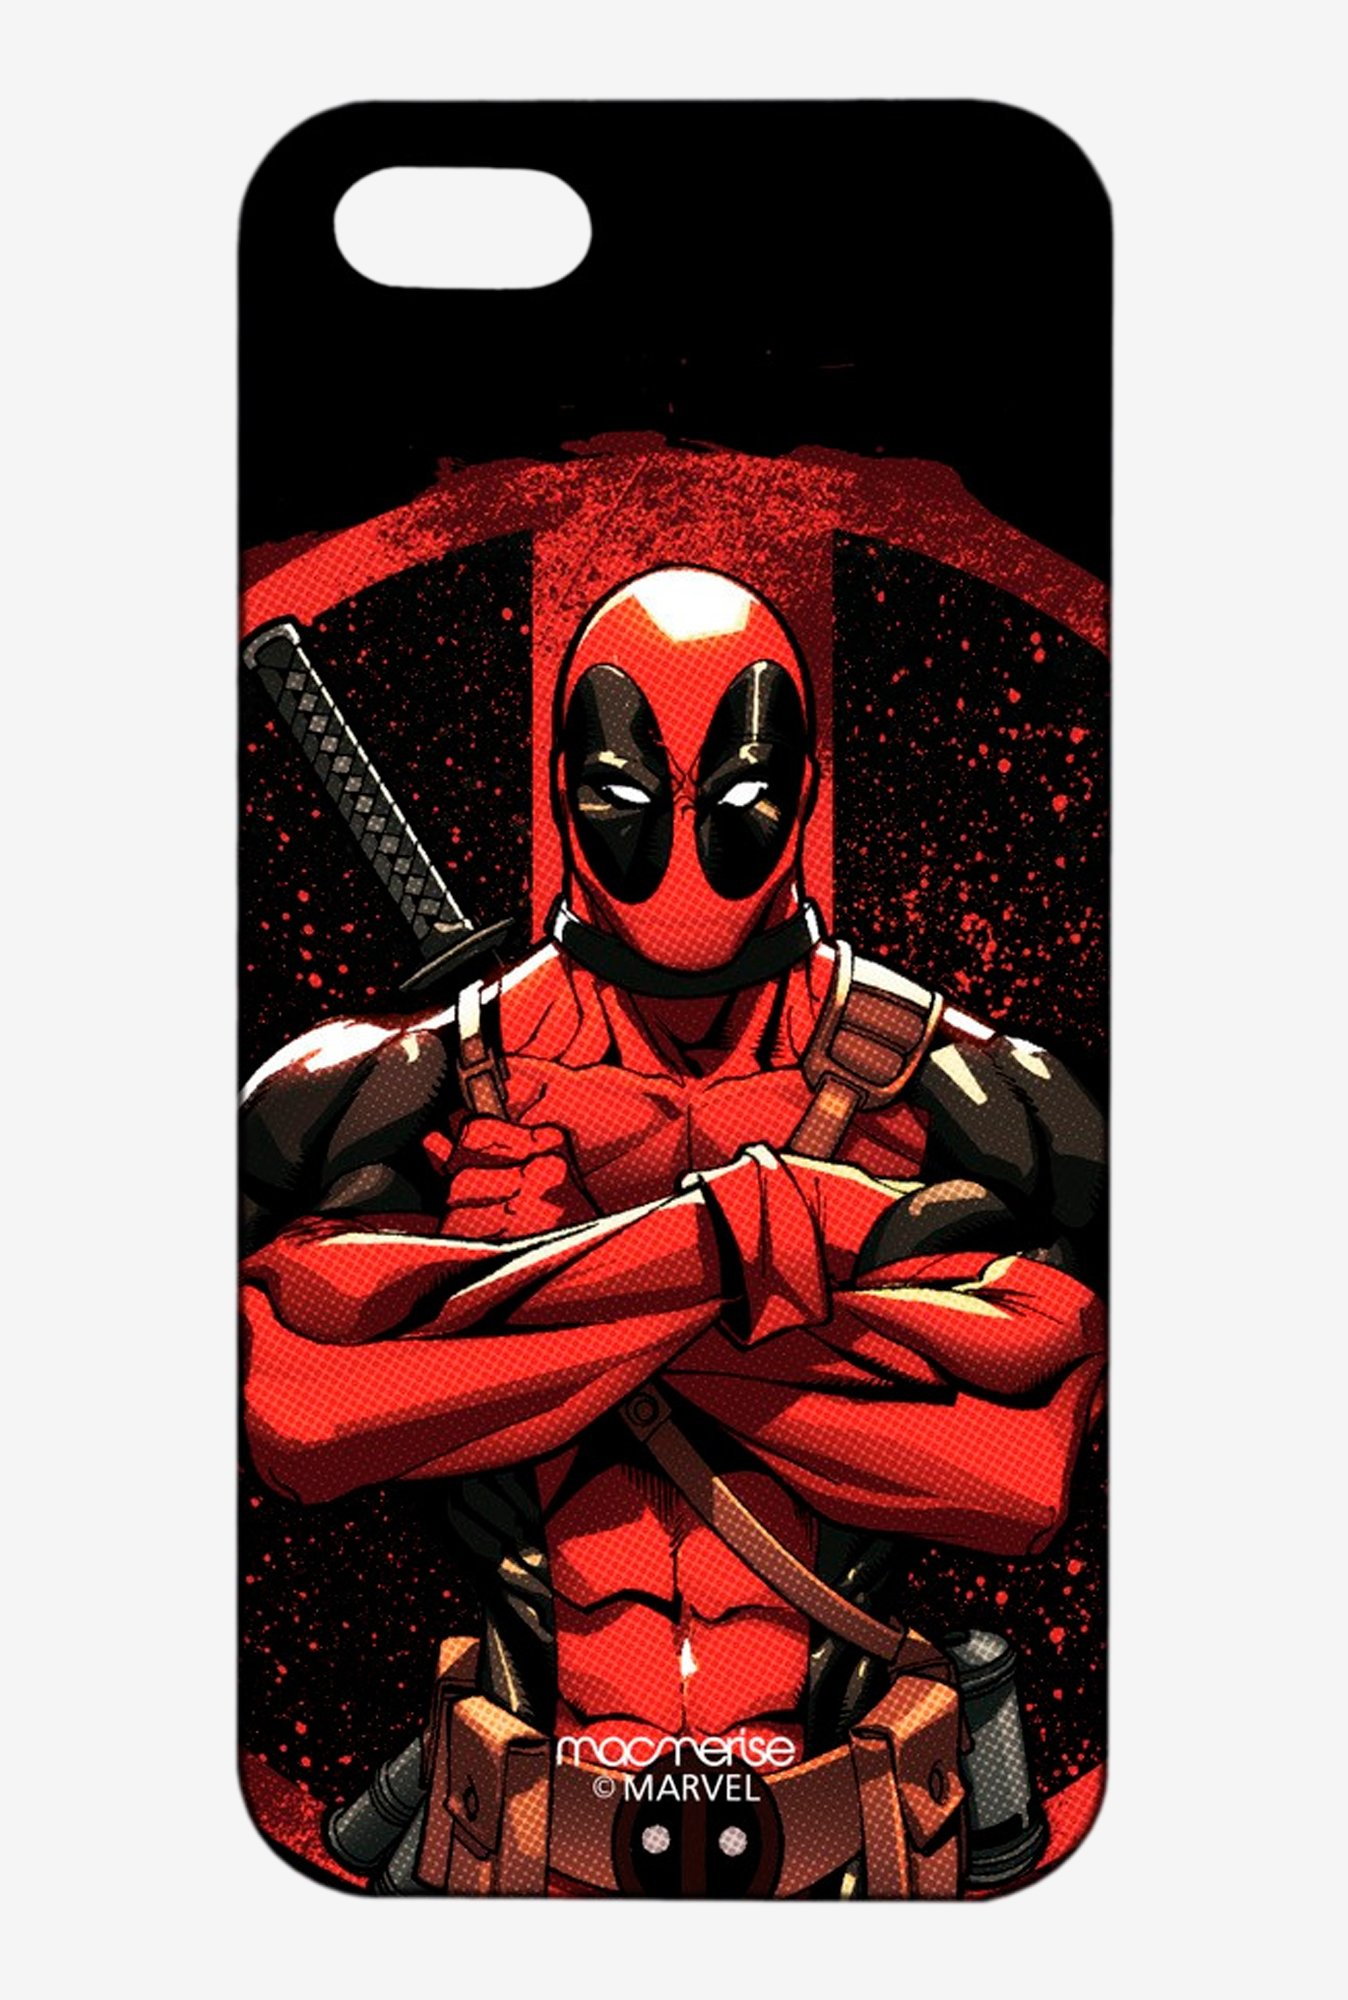 Macmerise Deadpool Stance Pro Case for iPhone 5/5S